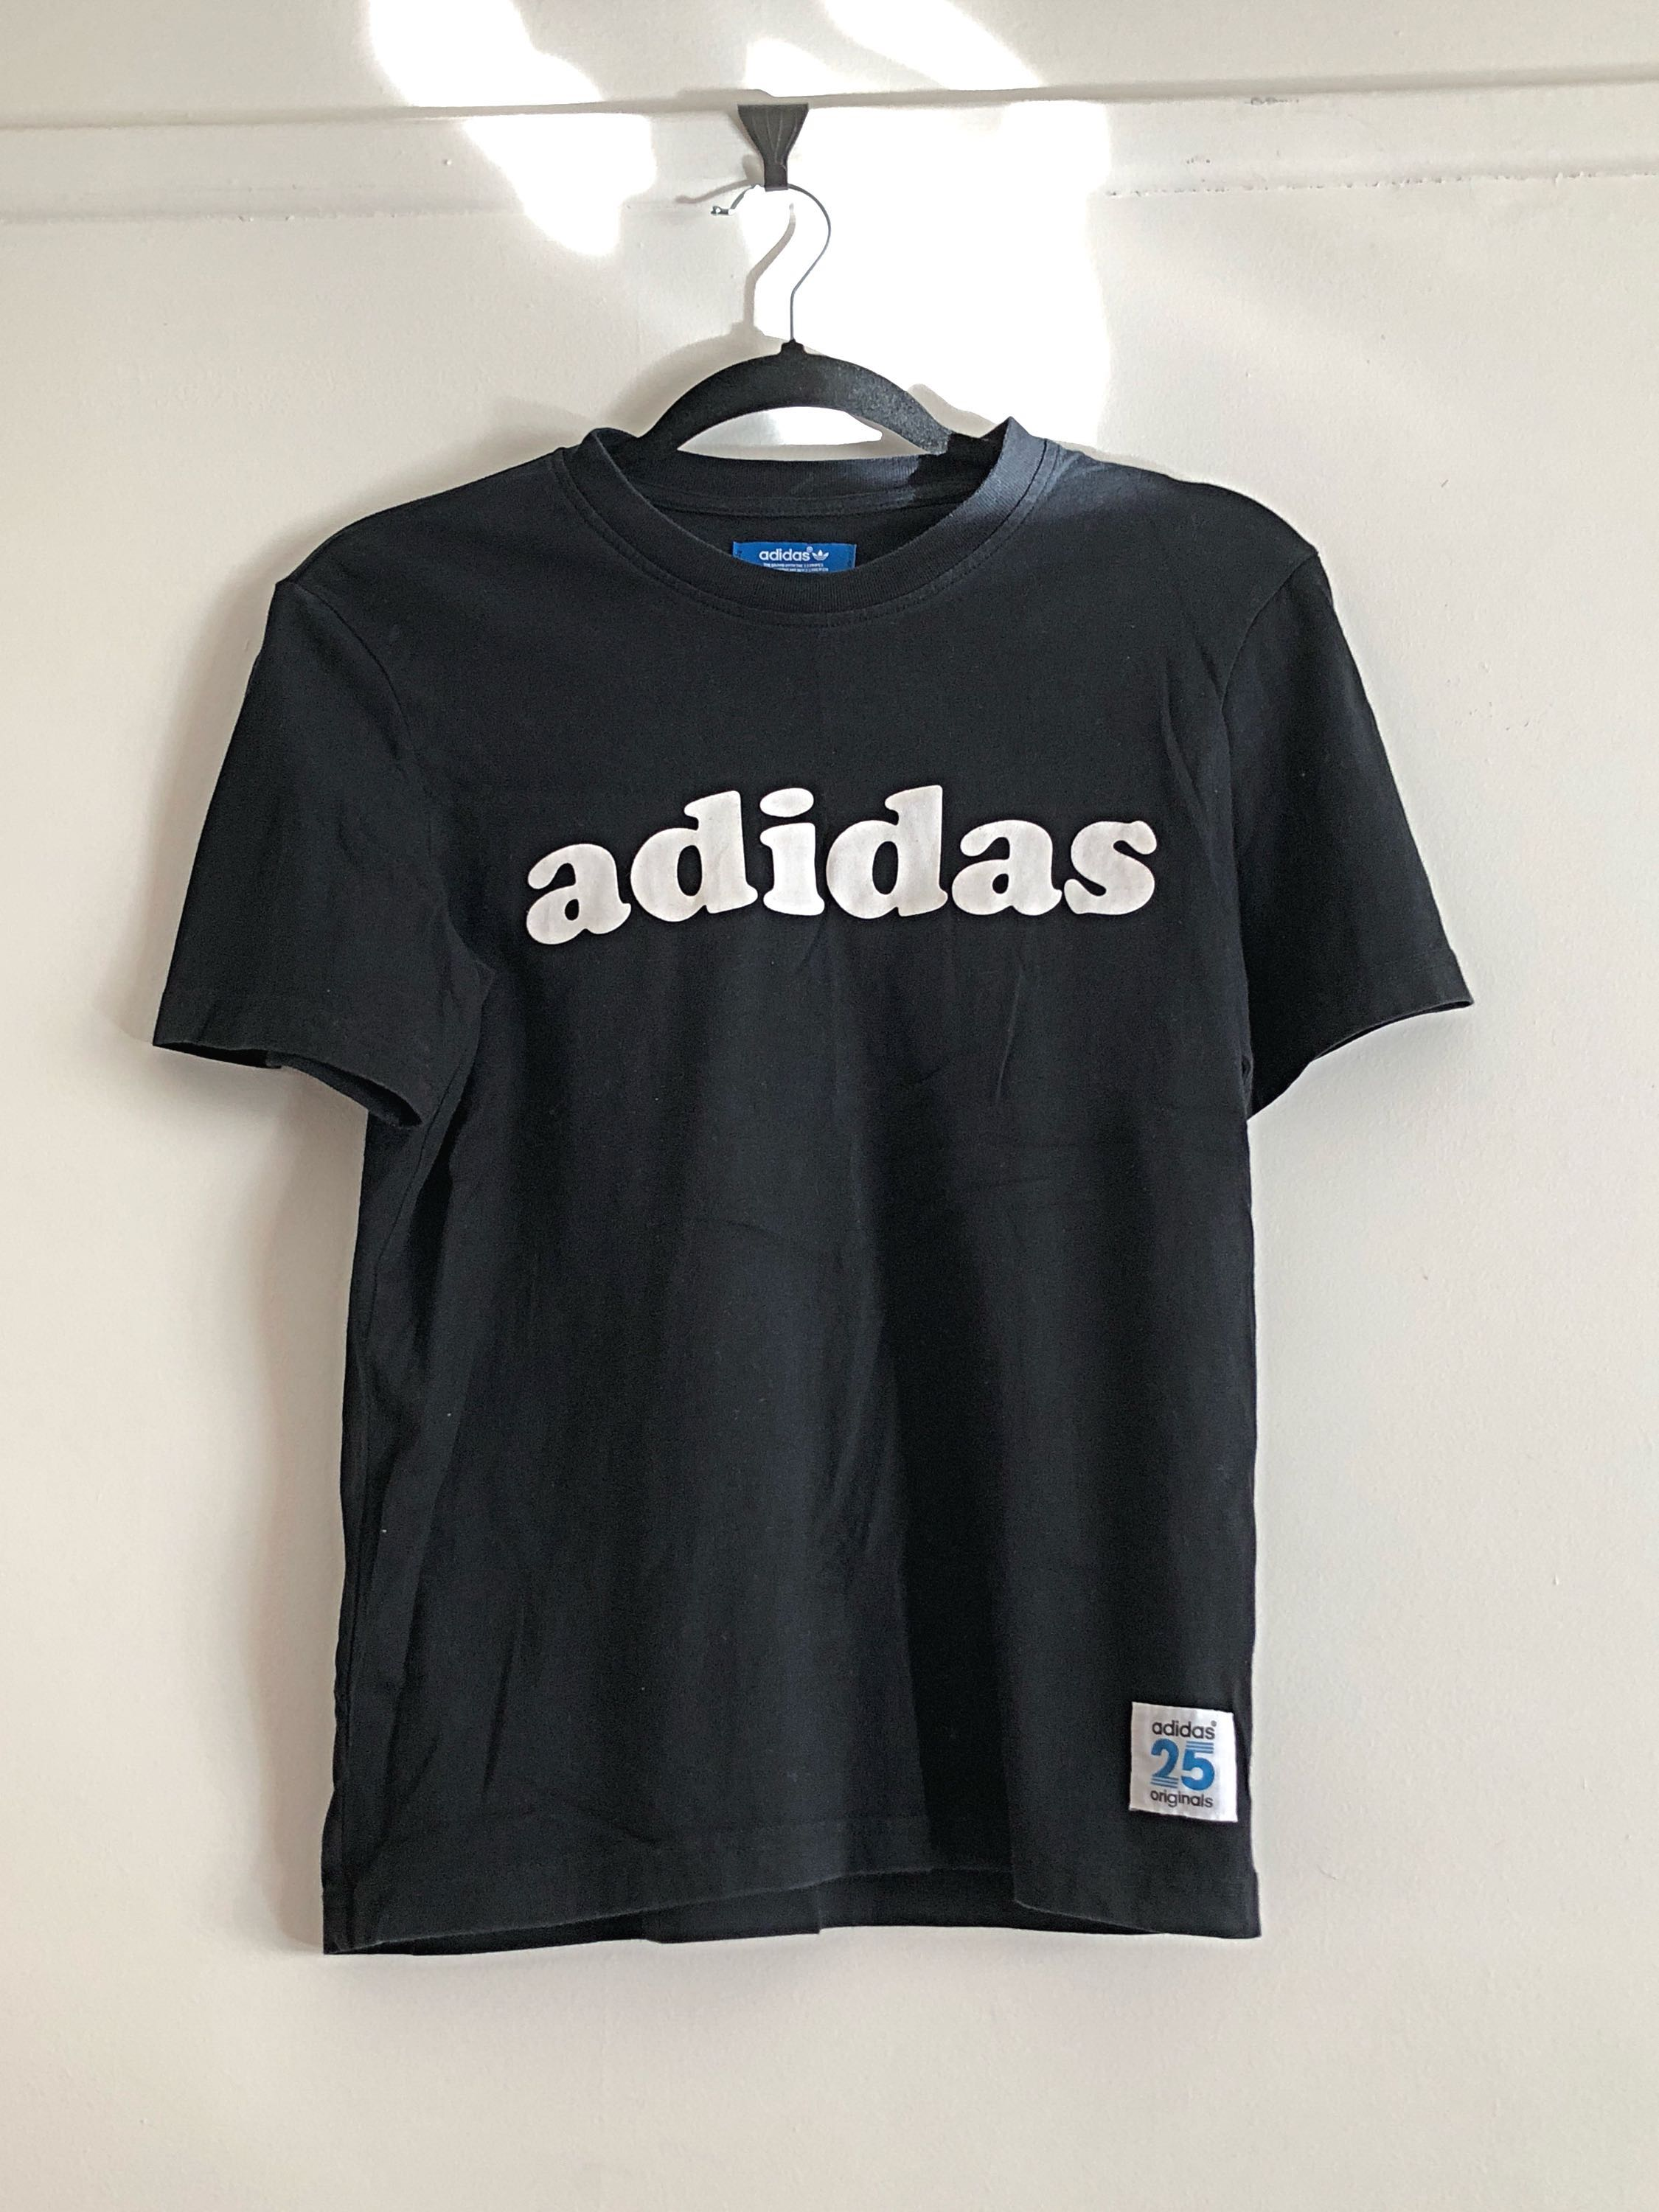 Adidas logo tee shirt top